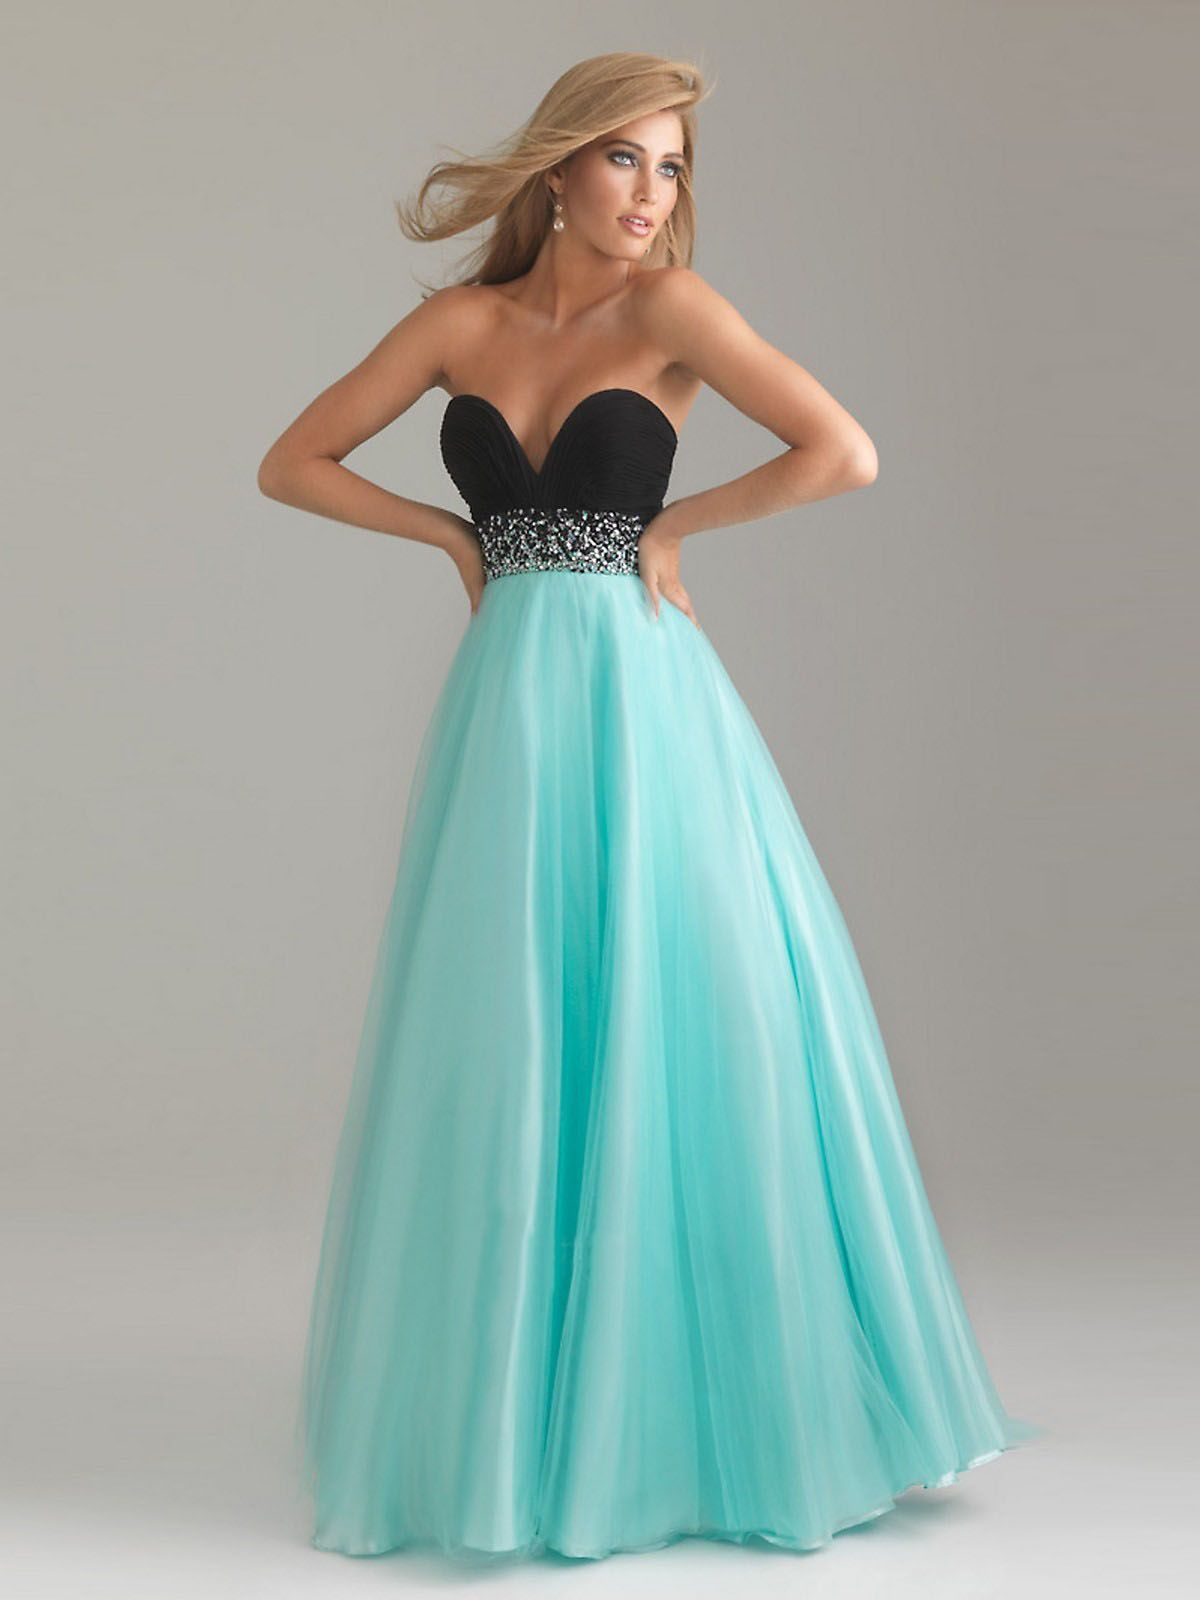 Black and teal wedding dress wedding ideas pinterest google